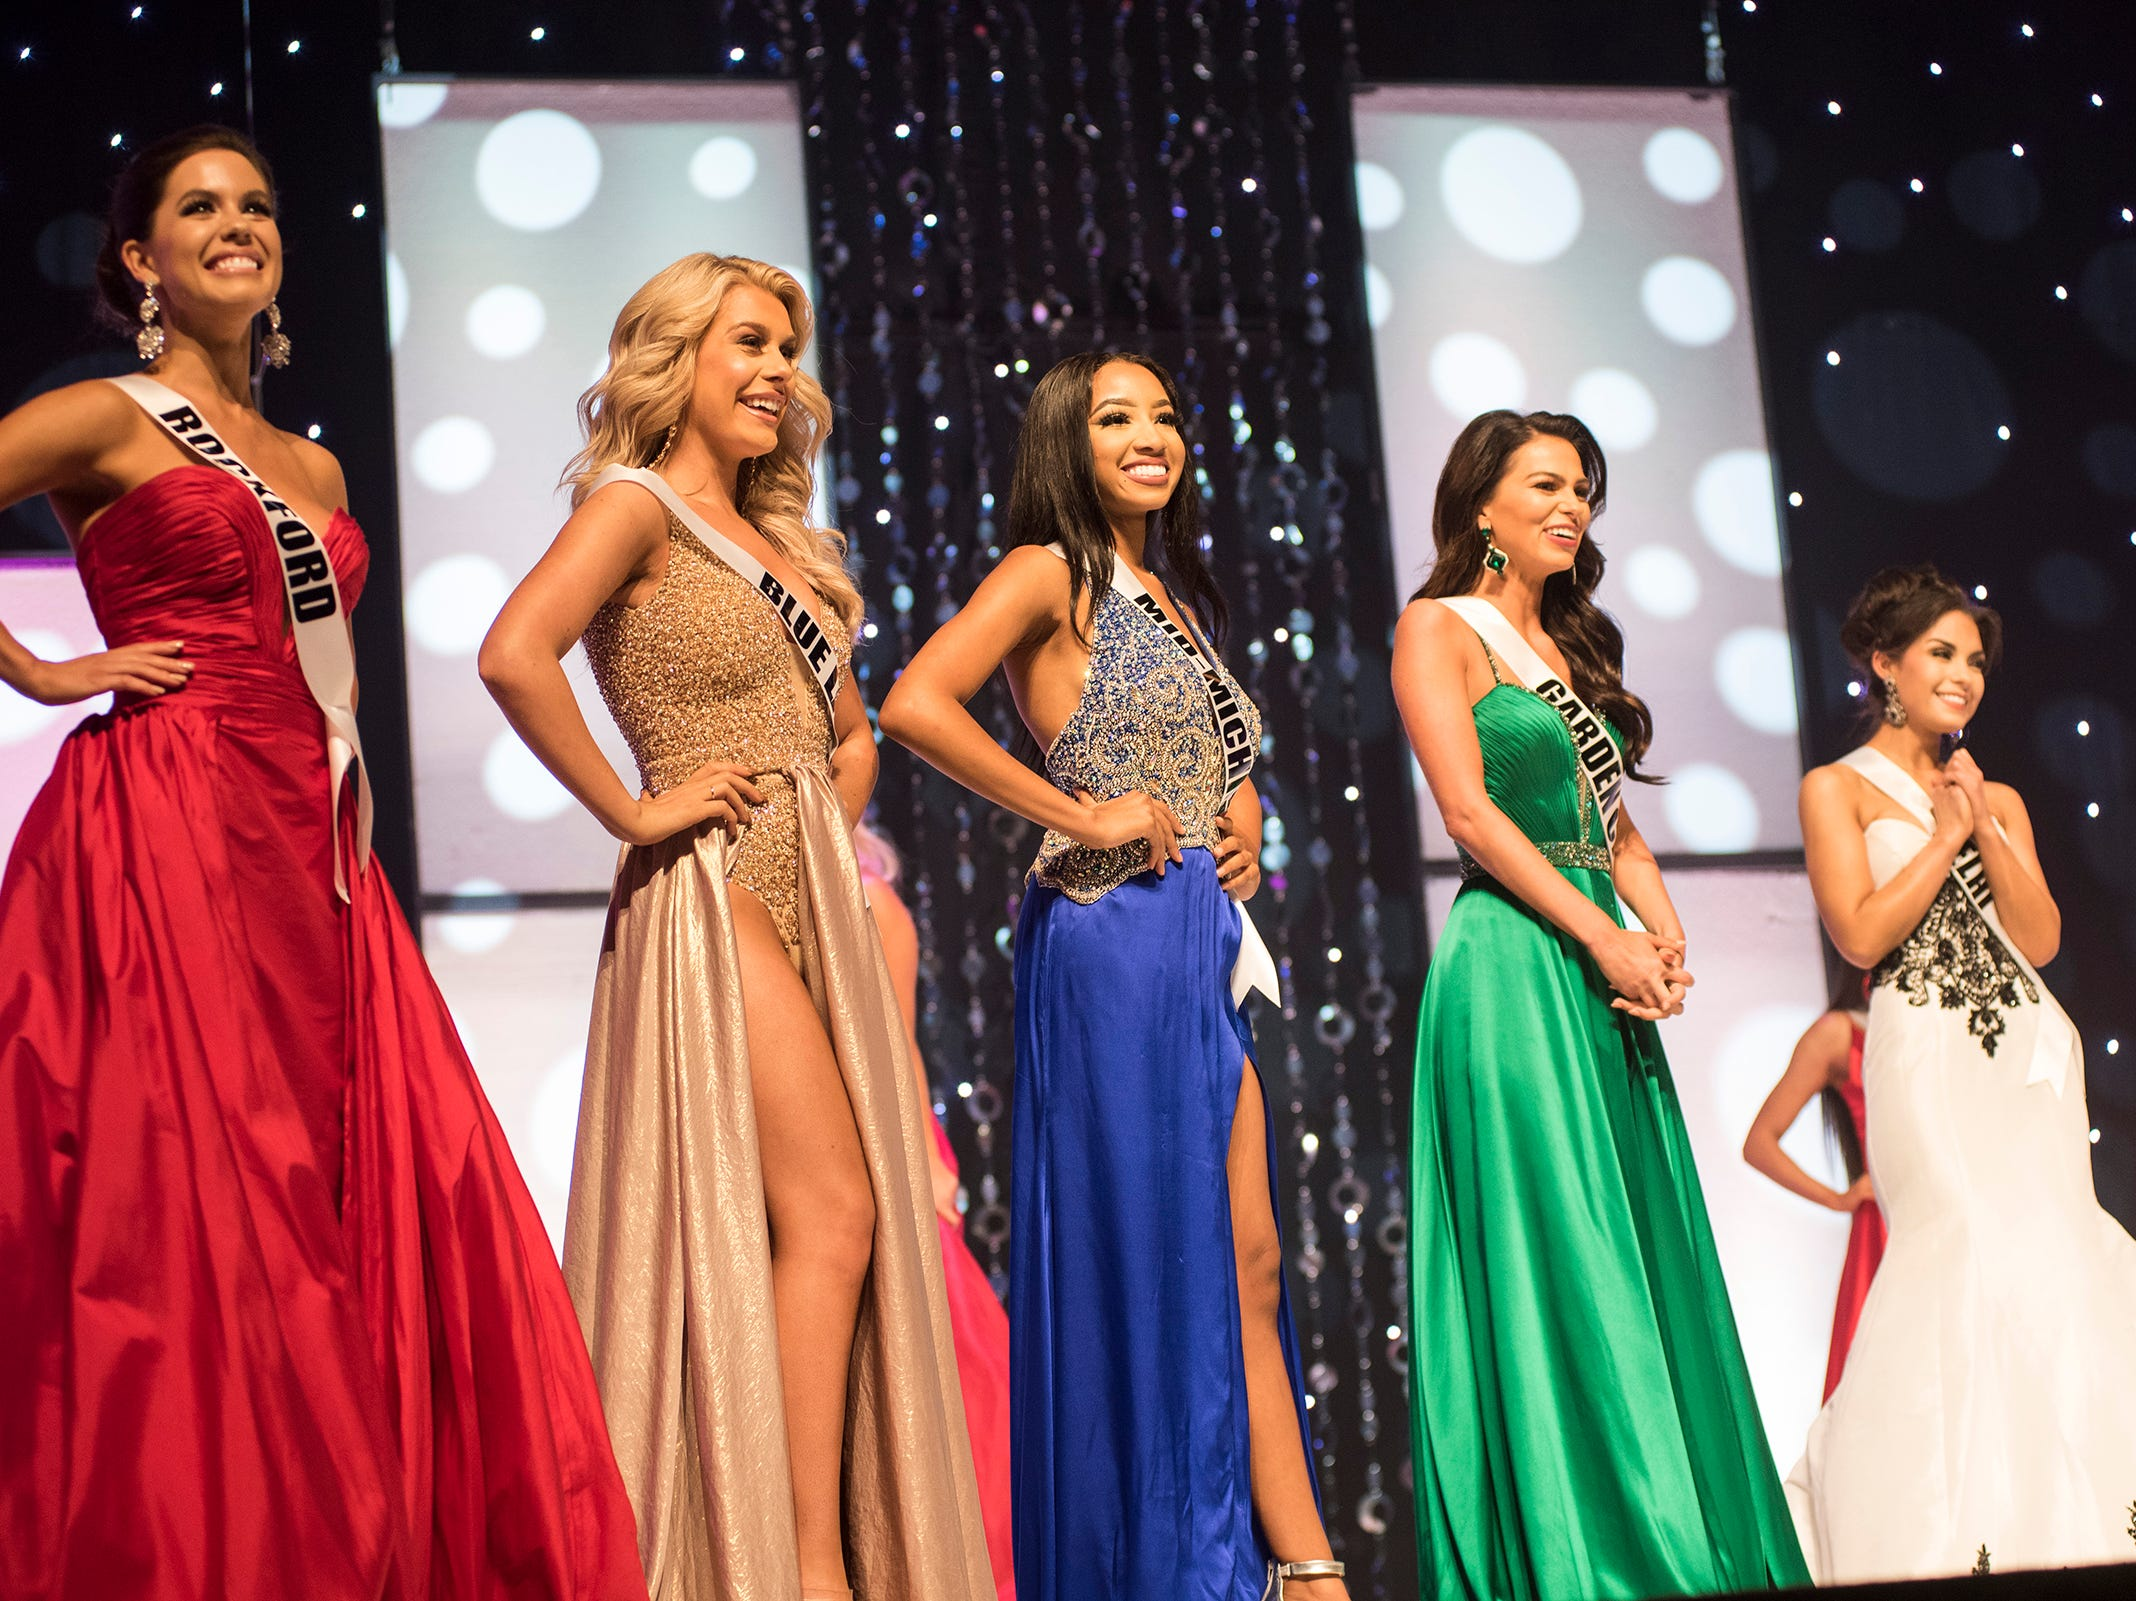 The finalists in the Miss Michigan USA pageant line up on stage Saturday, Sept. 22, 2018 during the Miss Michigan Teen USA pageant at McMorran Theater.